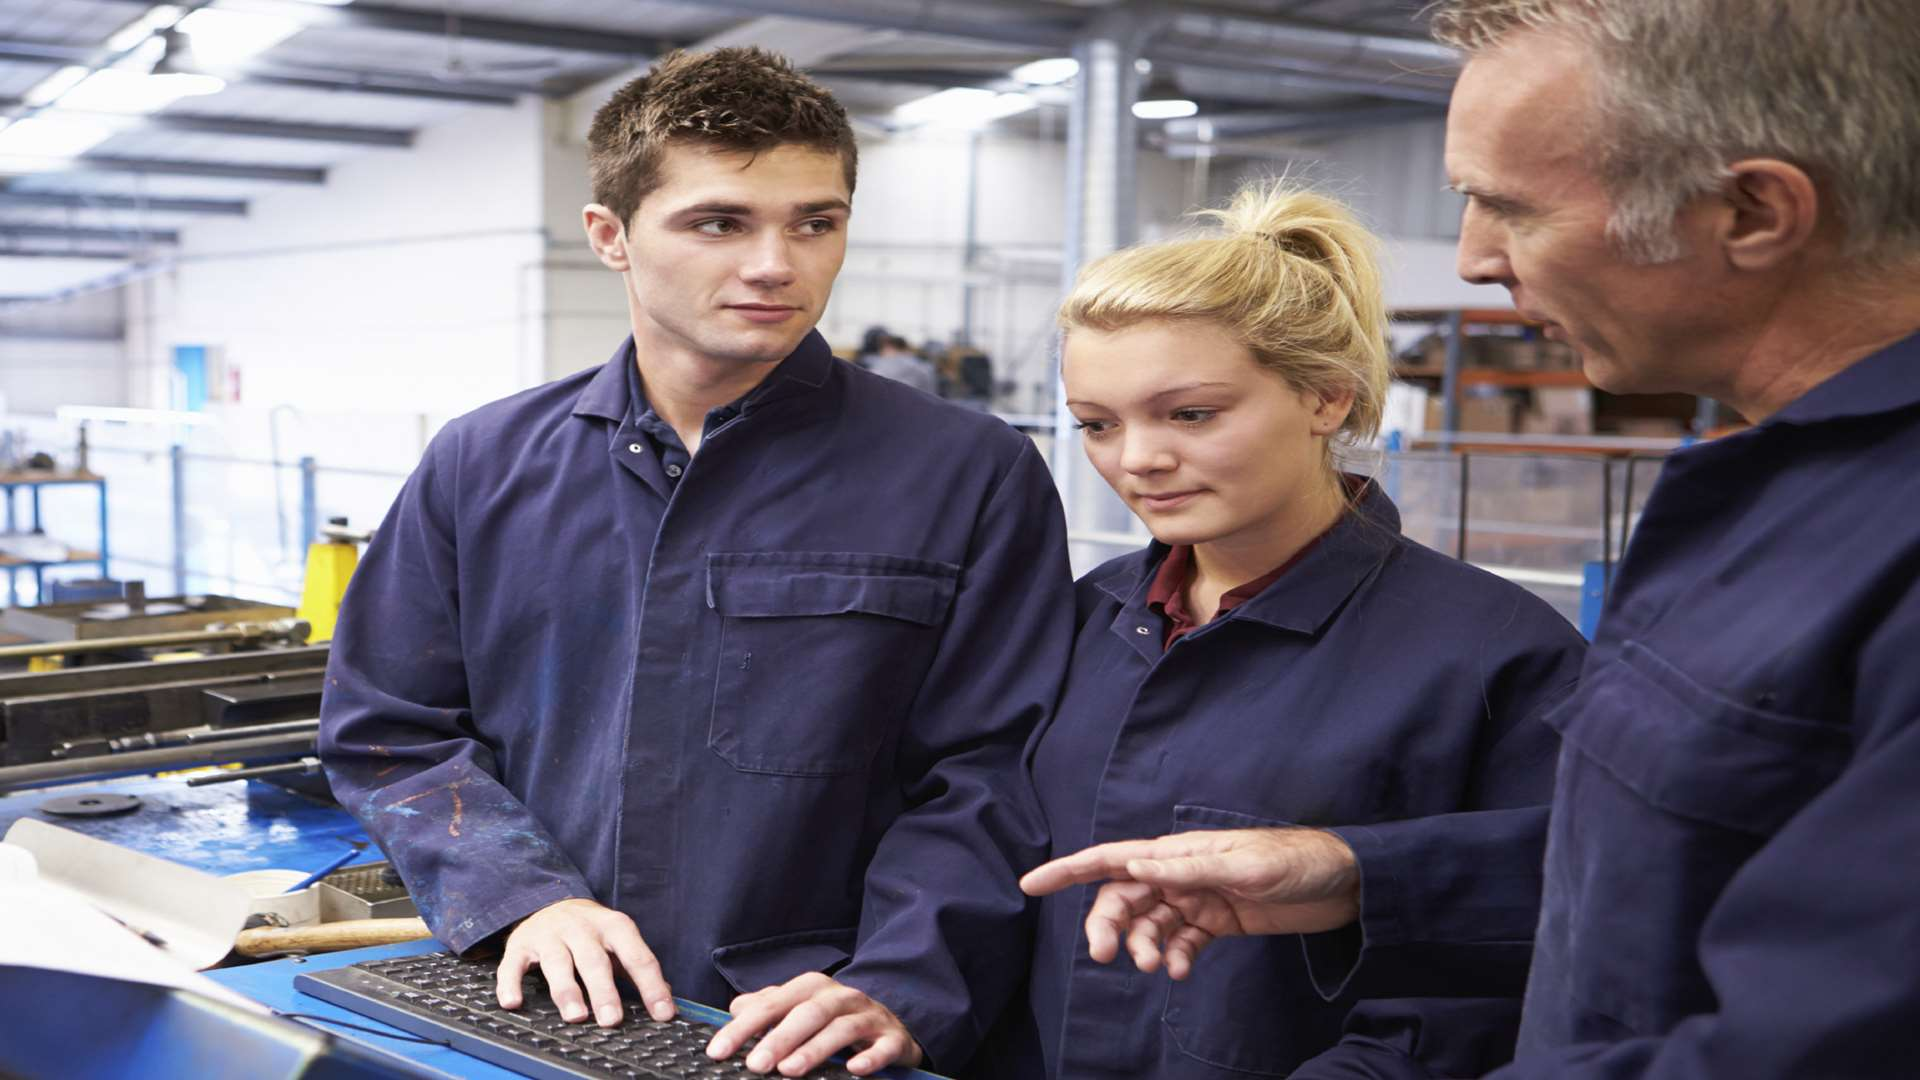 Engineer teaches apprentices